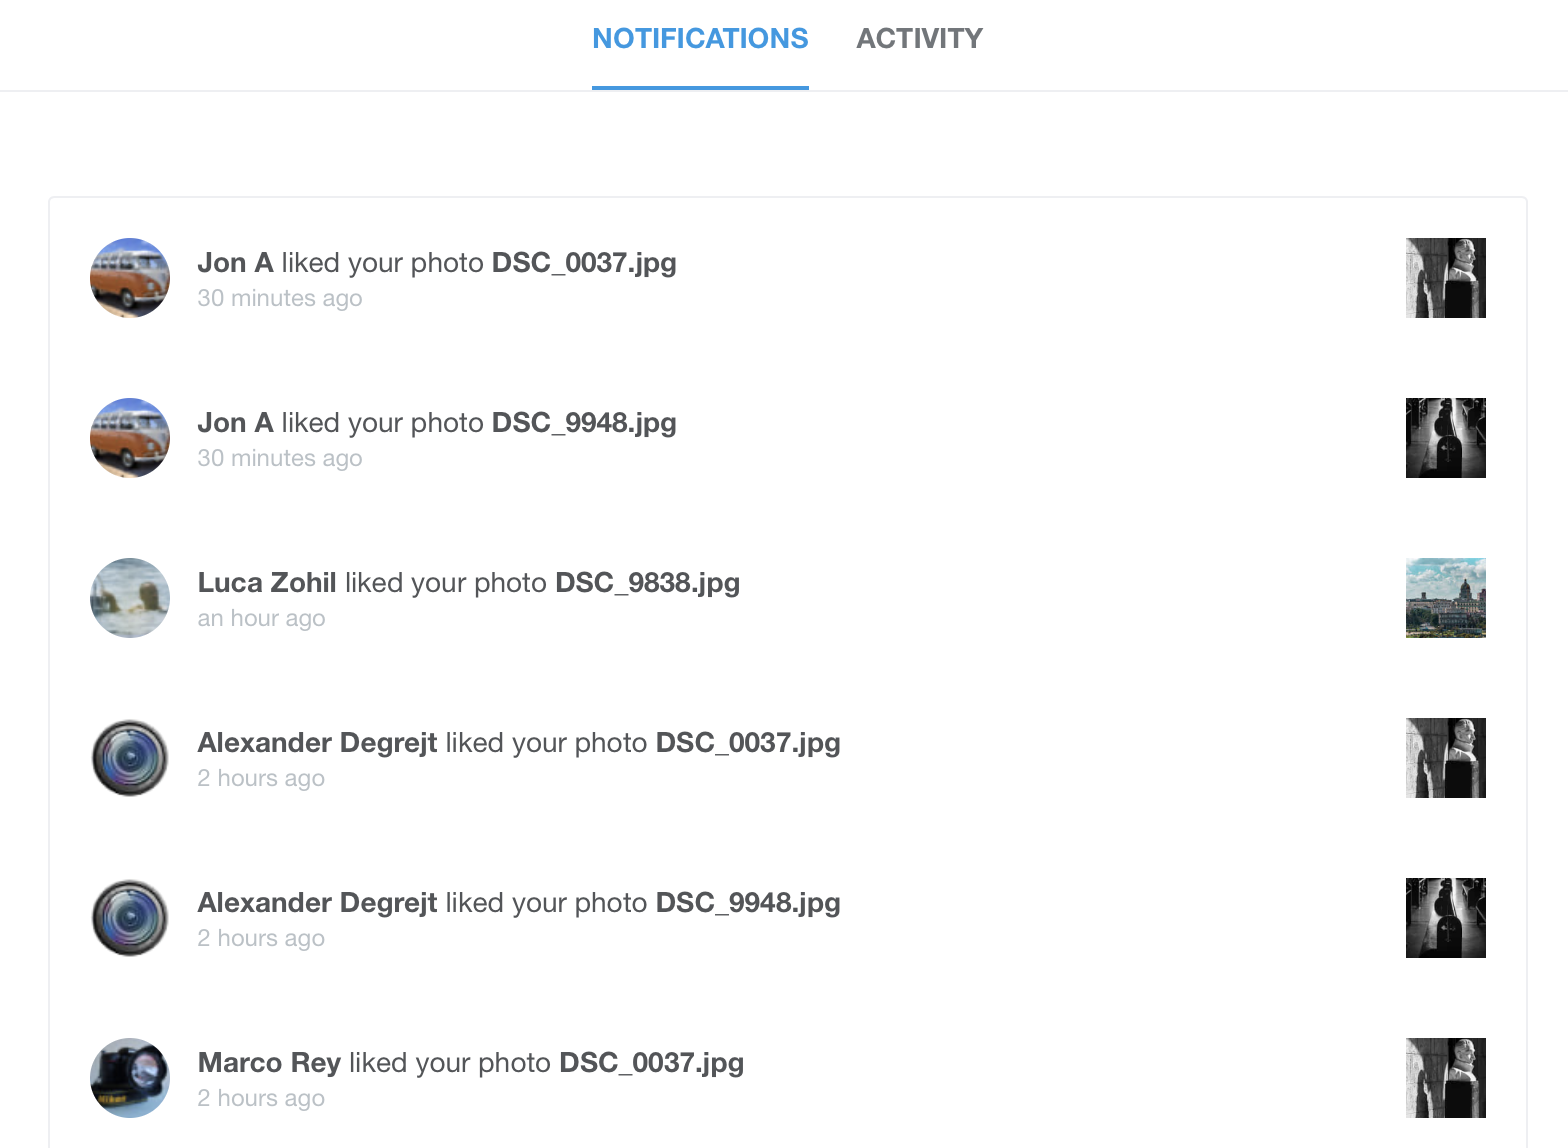 500px notifications view